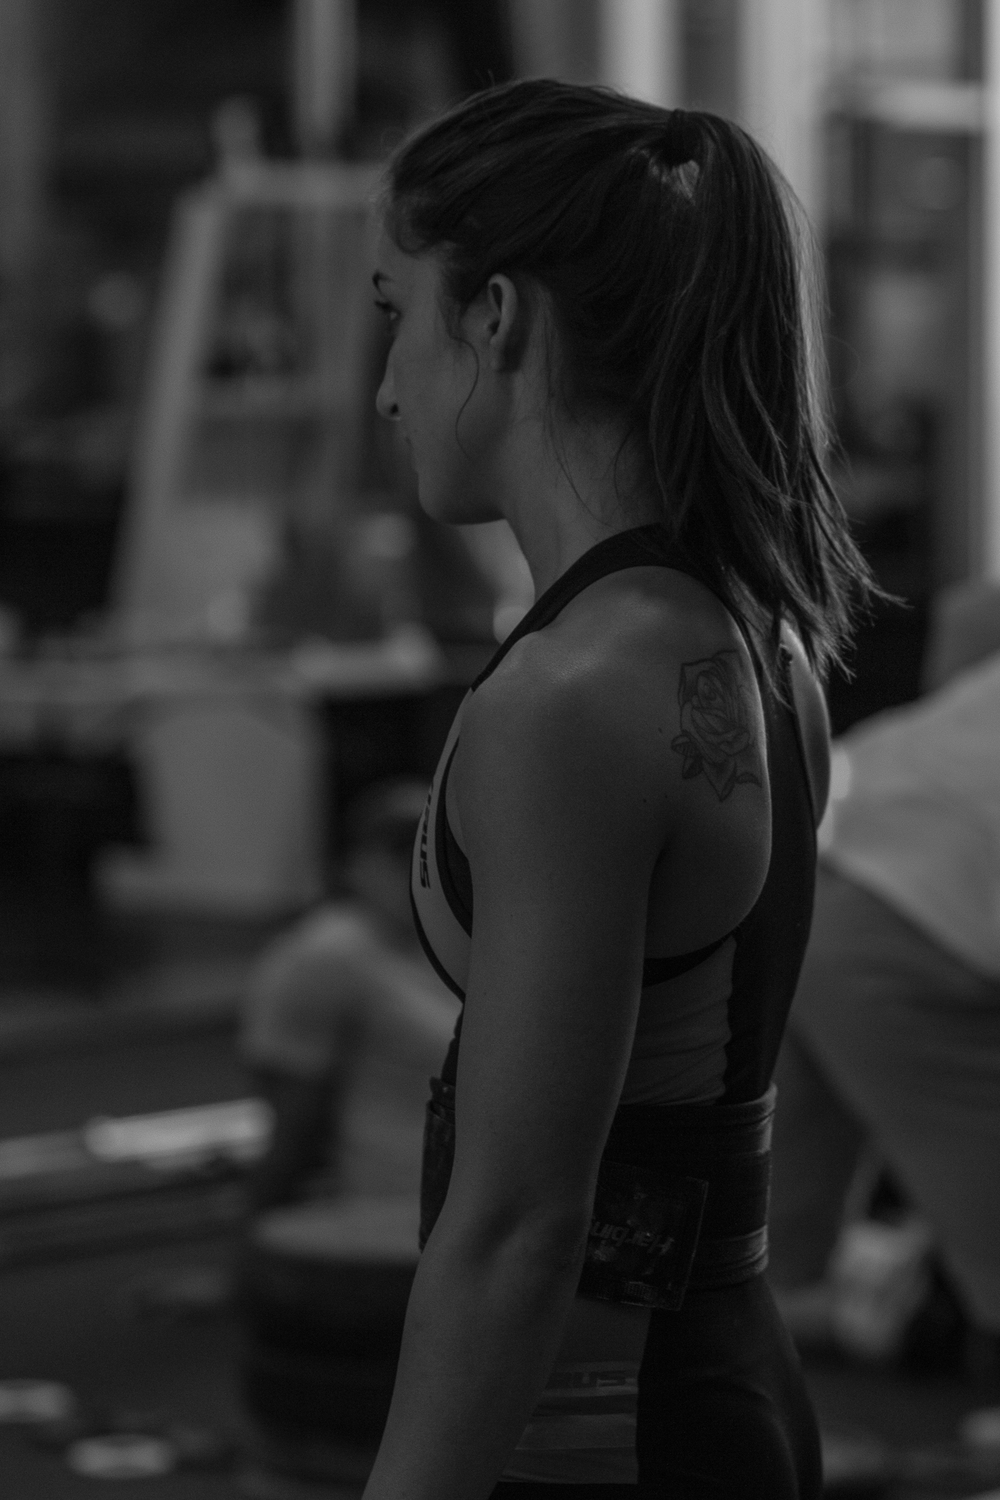 weightlifting-photography-black-white-connecticut-open-weightlifting-meet-vp (6 of 7).jpg